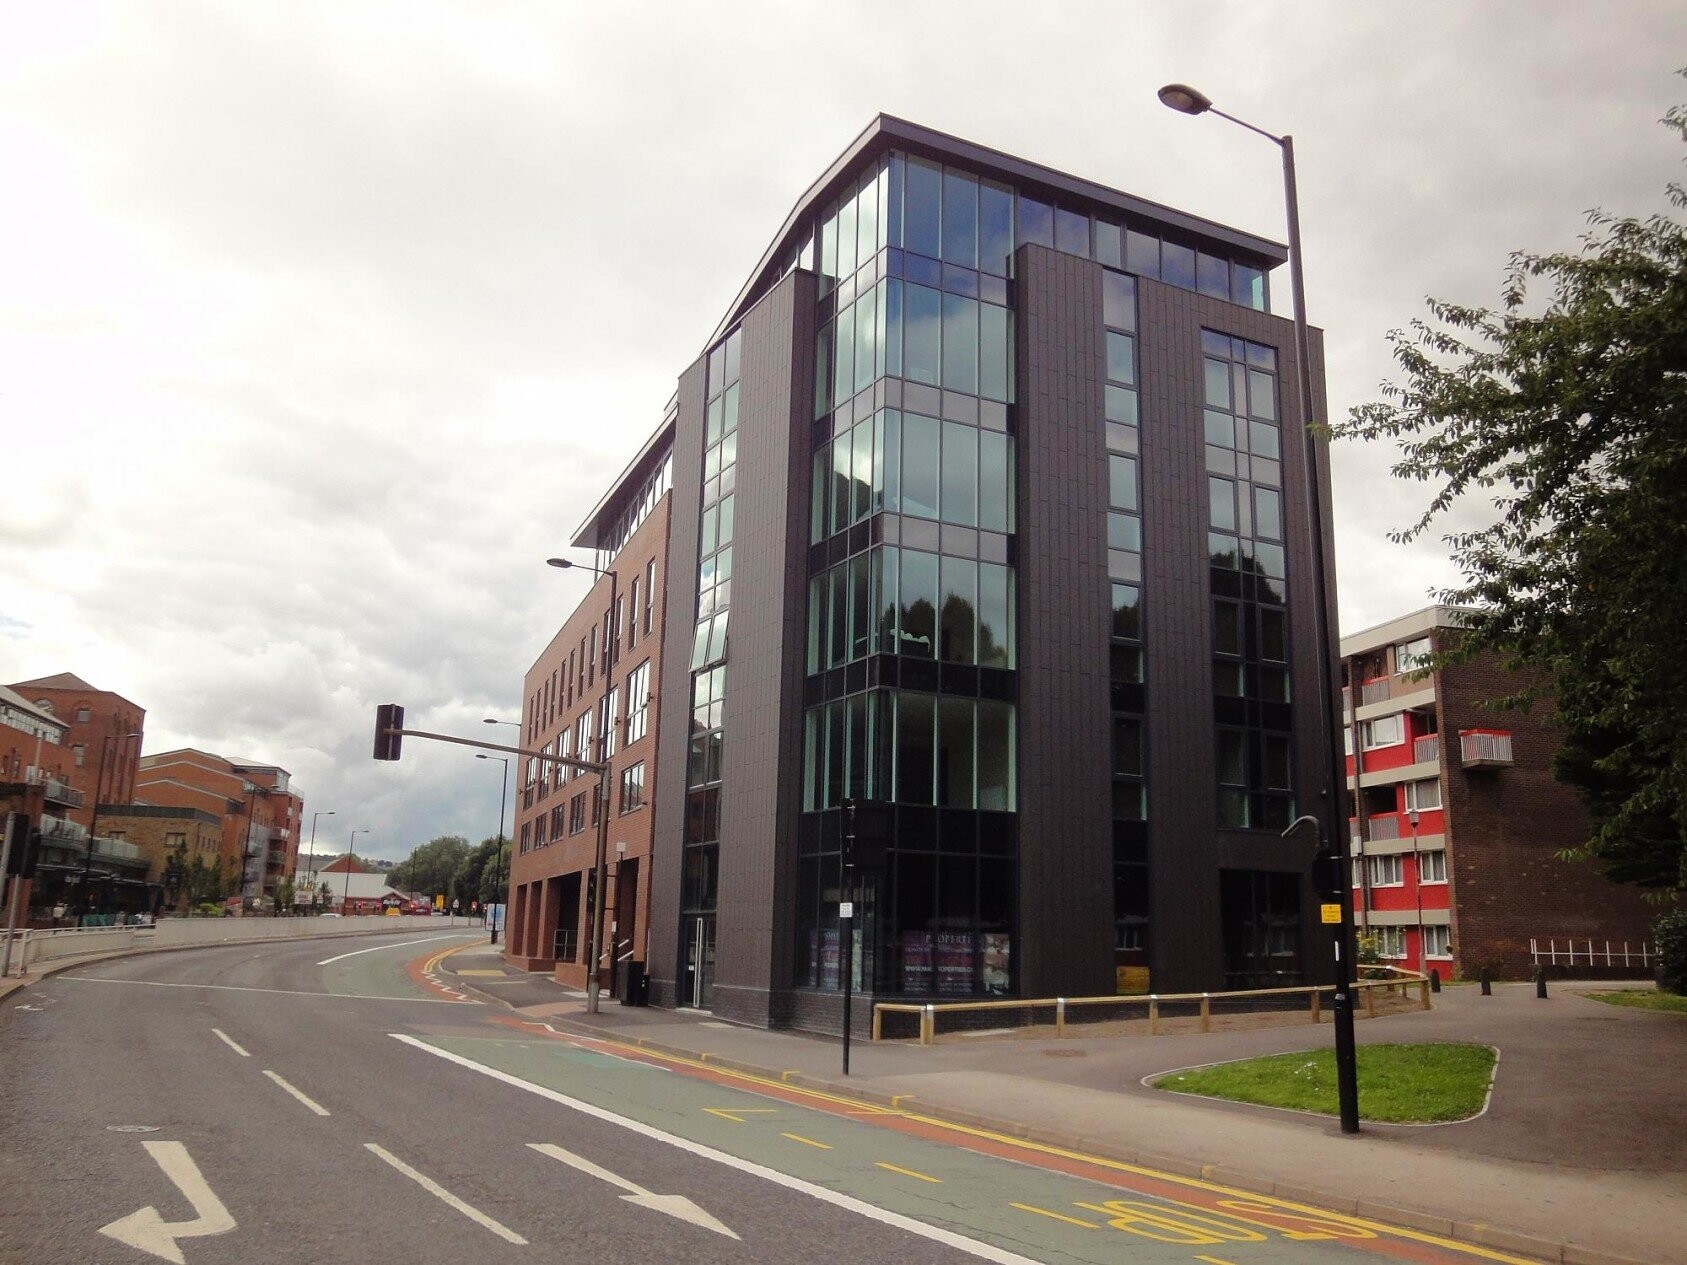 4 bedroom student apartment in Ecclesall, Sheffield